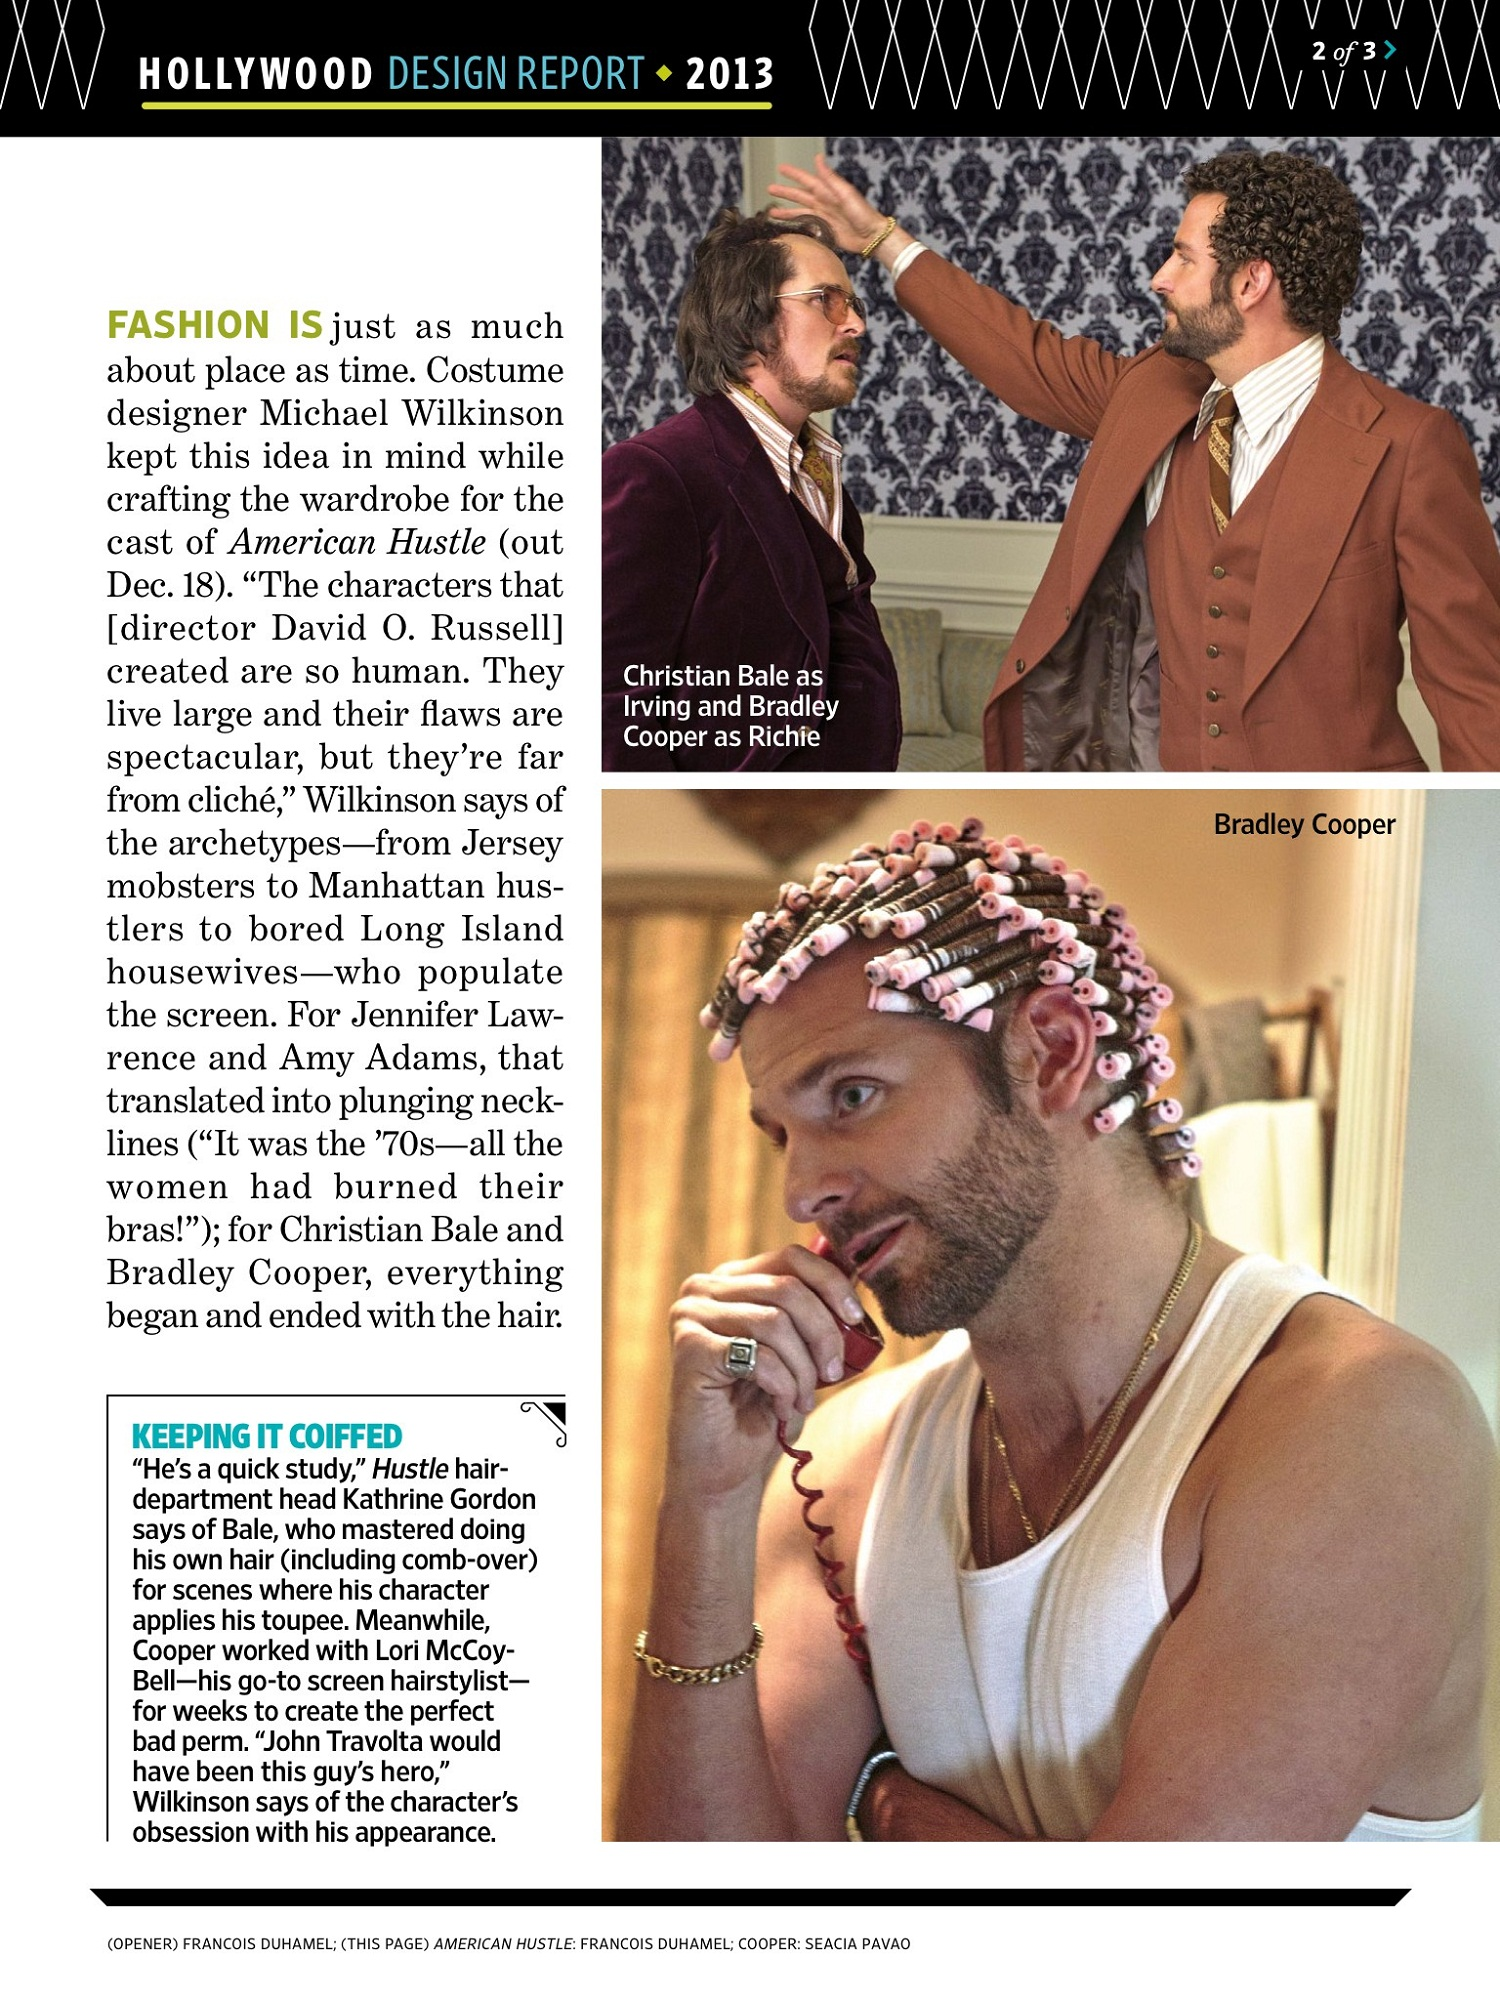 ew 22 nov 2013 002 Entertainment Weekly: The Look Of American Hustle (Scans)